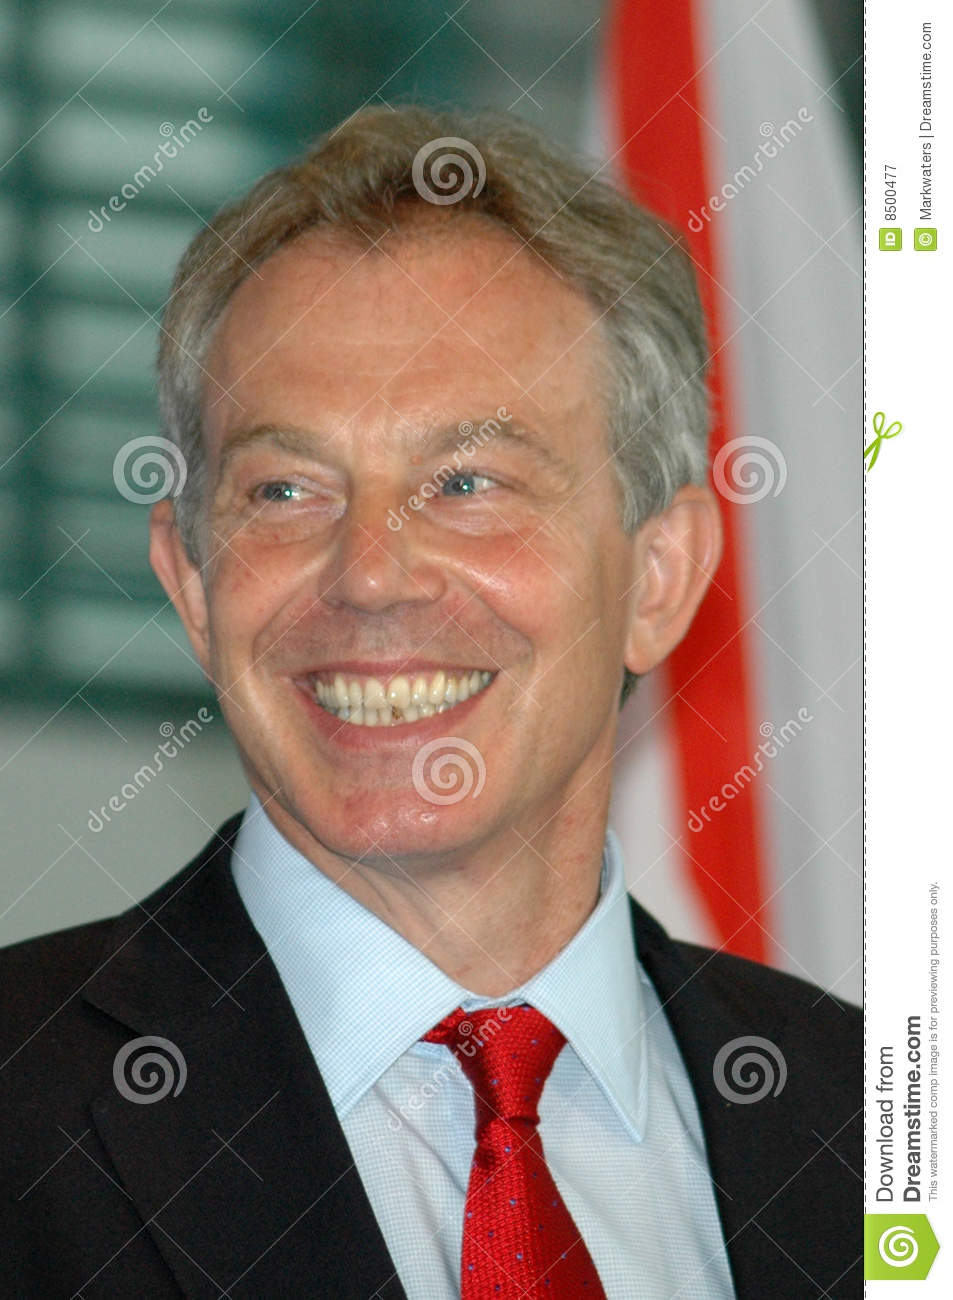 Tony Blair Editorial Photography Image 8500477